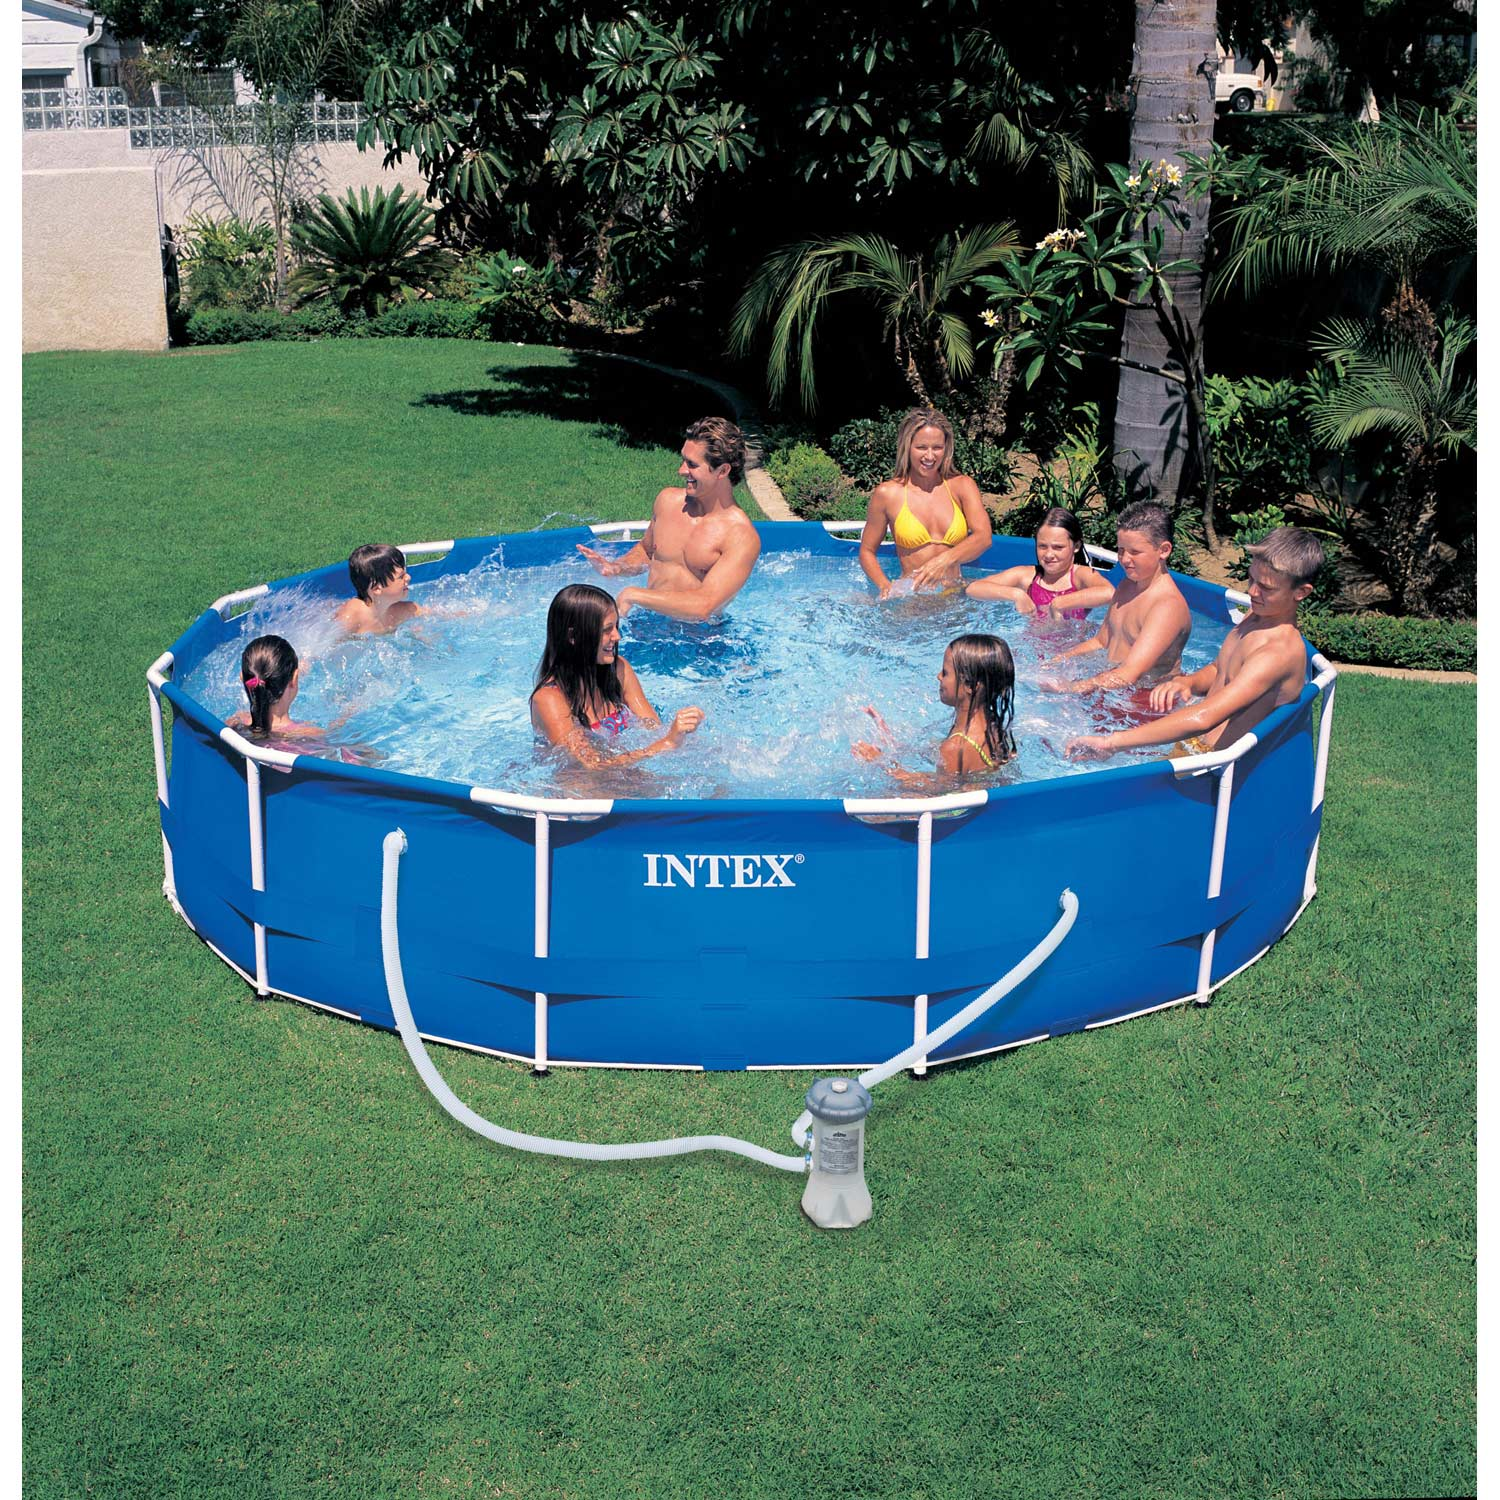 Piscine hors sol autoportante tubulaire metal frame intex for Piscine bestway 3 66